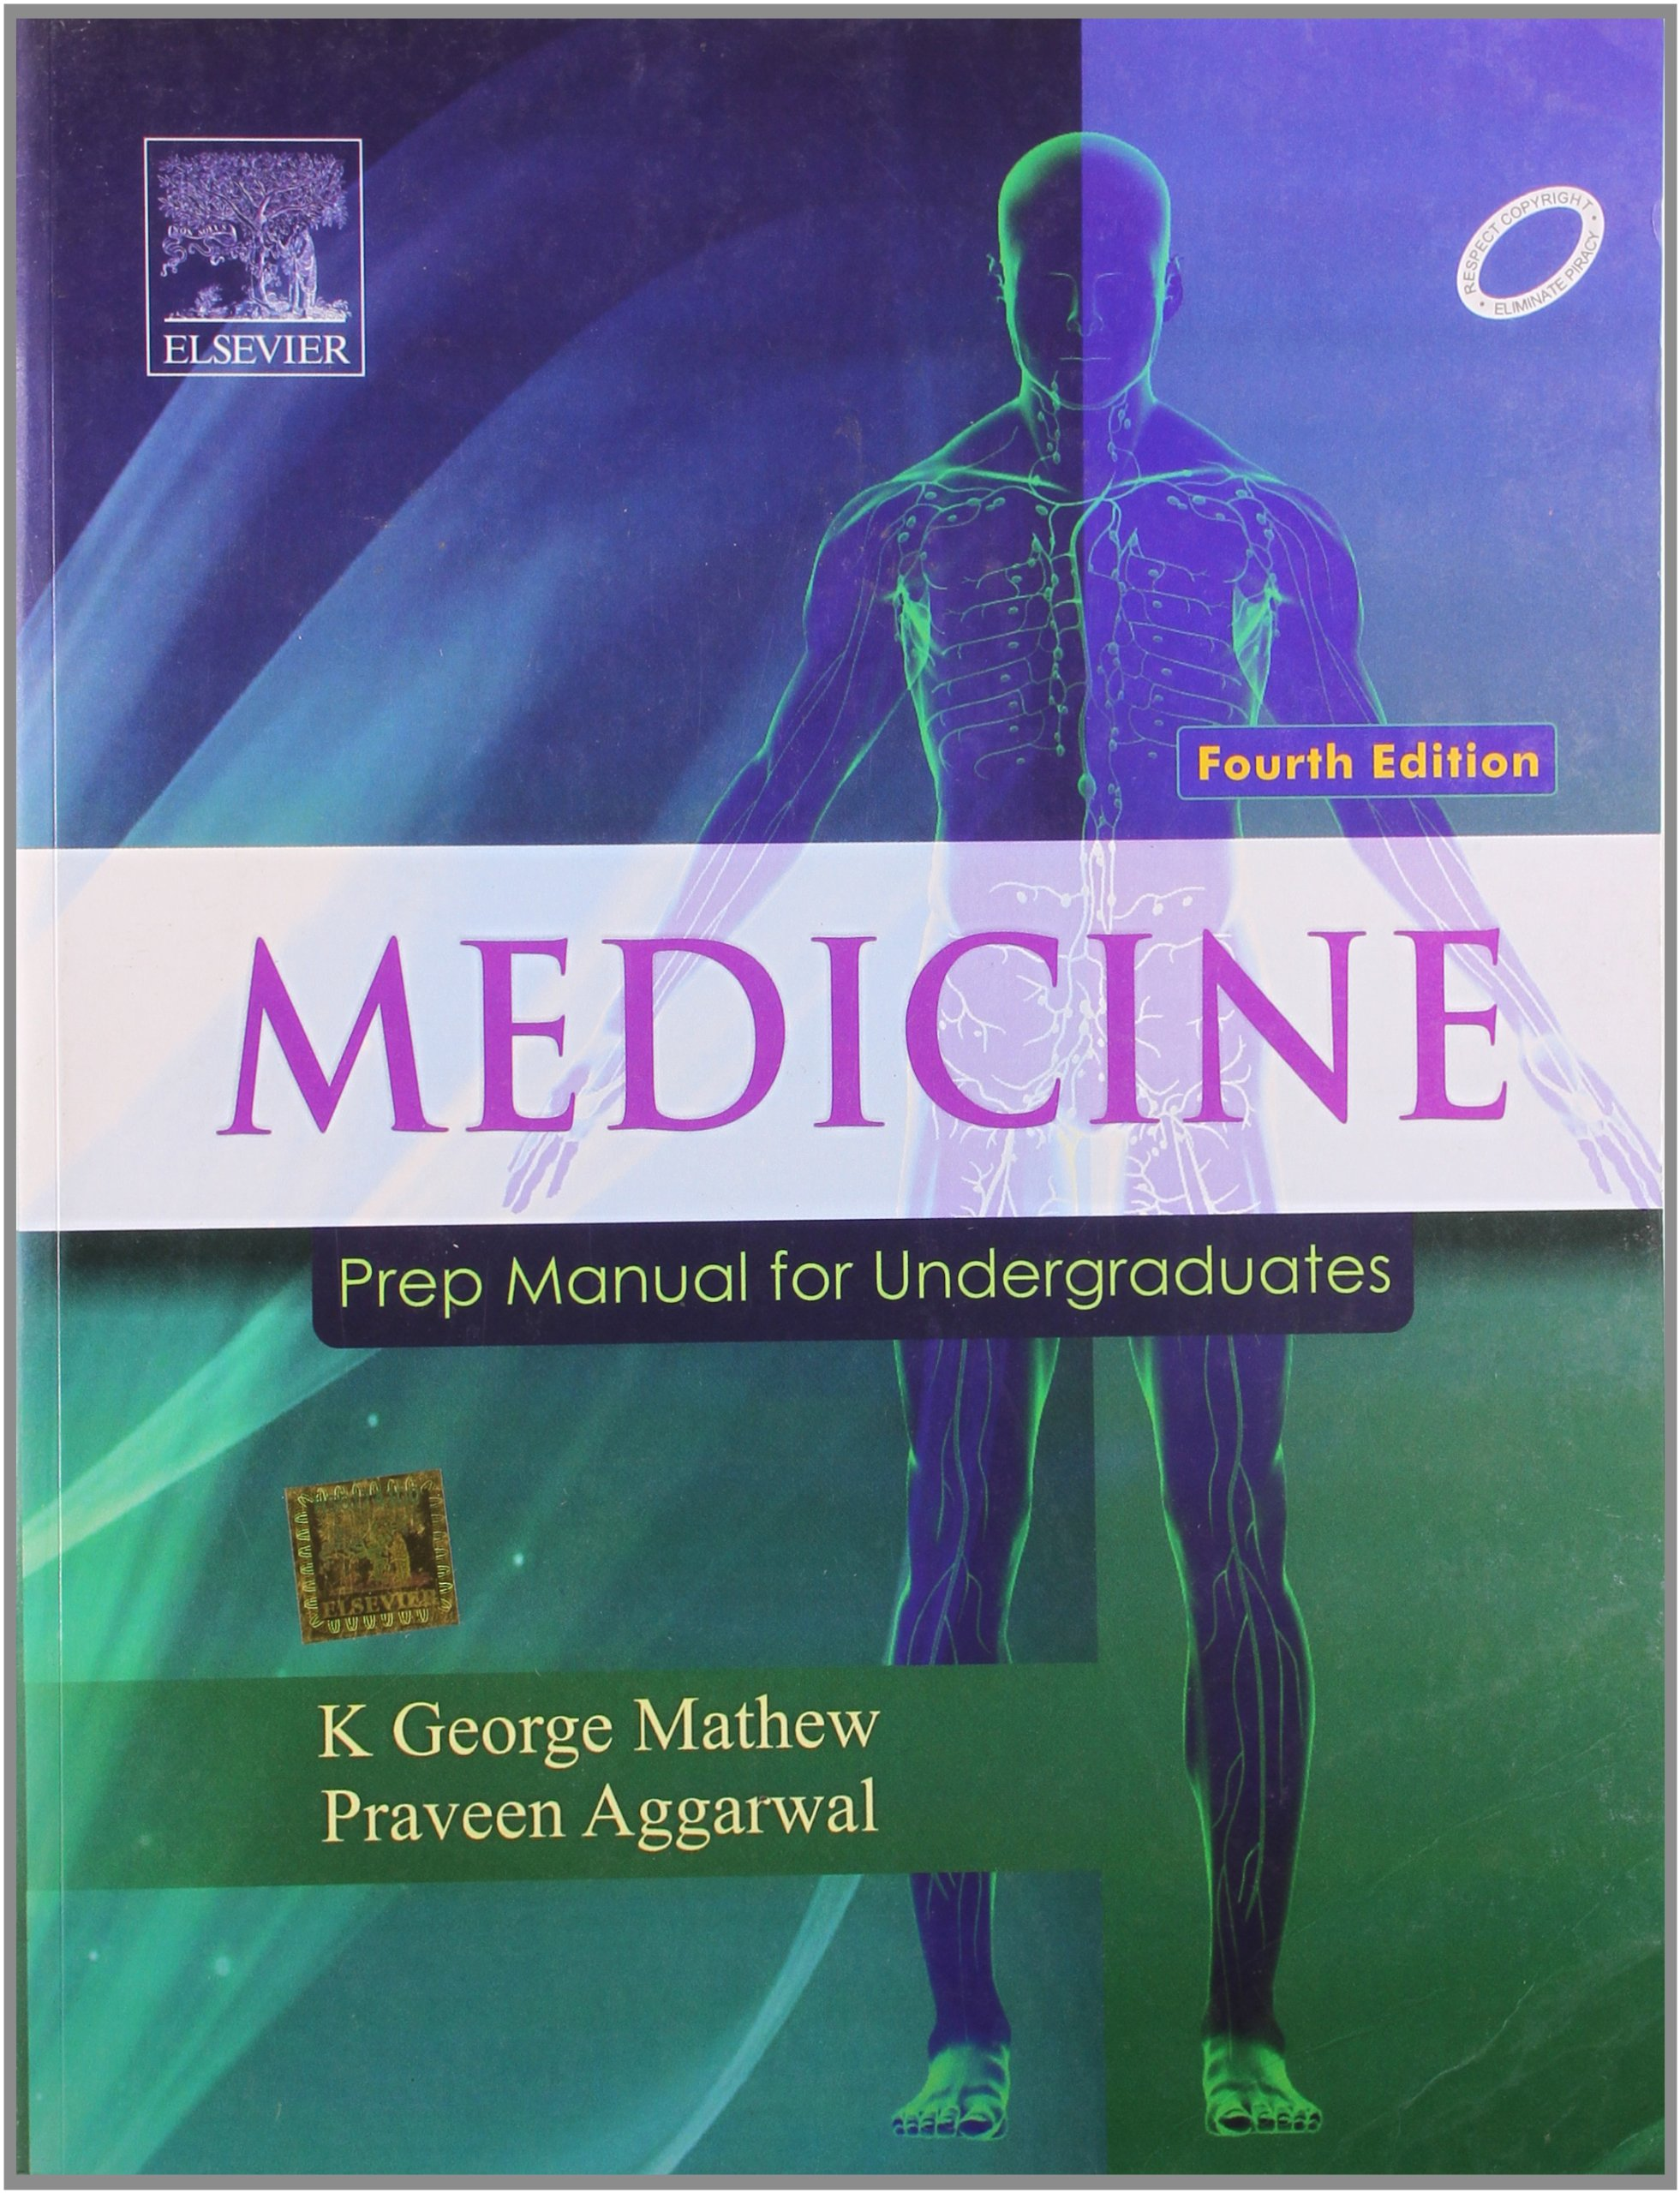 Buy Medicine: Prep Manual for Undergraduates (Old Edition) Book Online at  Low Prices in India | Medicine: Prep Manual for Undergraduates (Old Edition)  ...